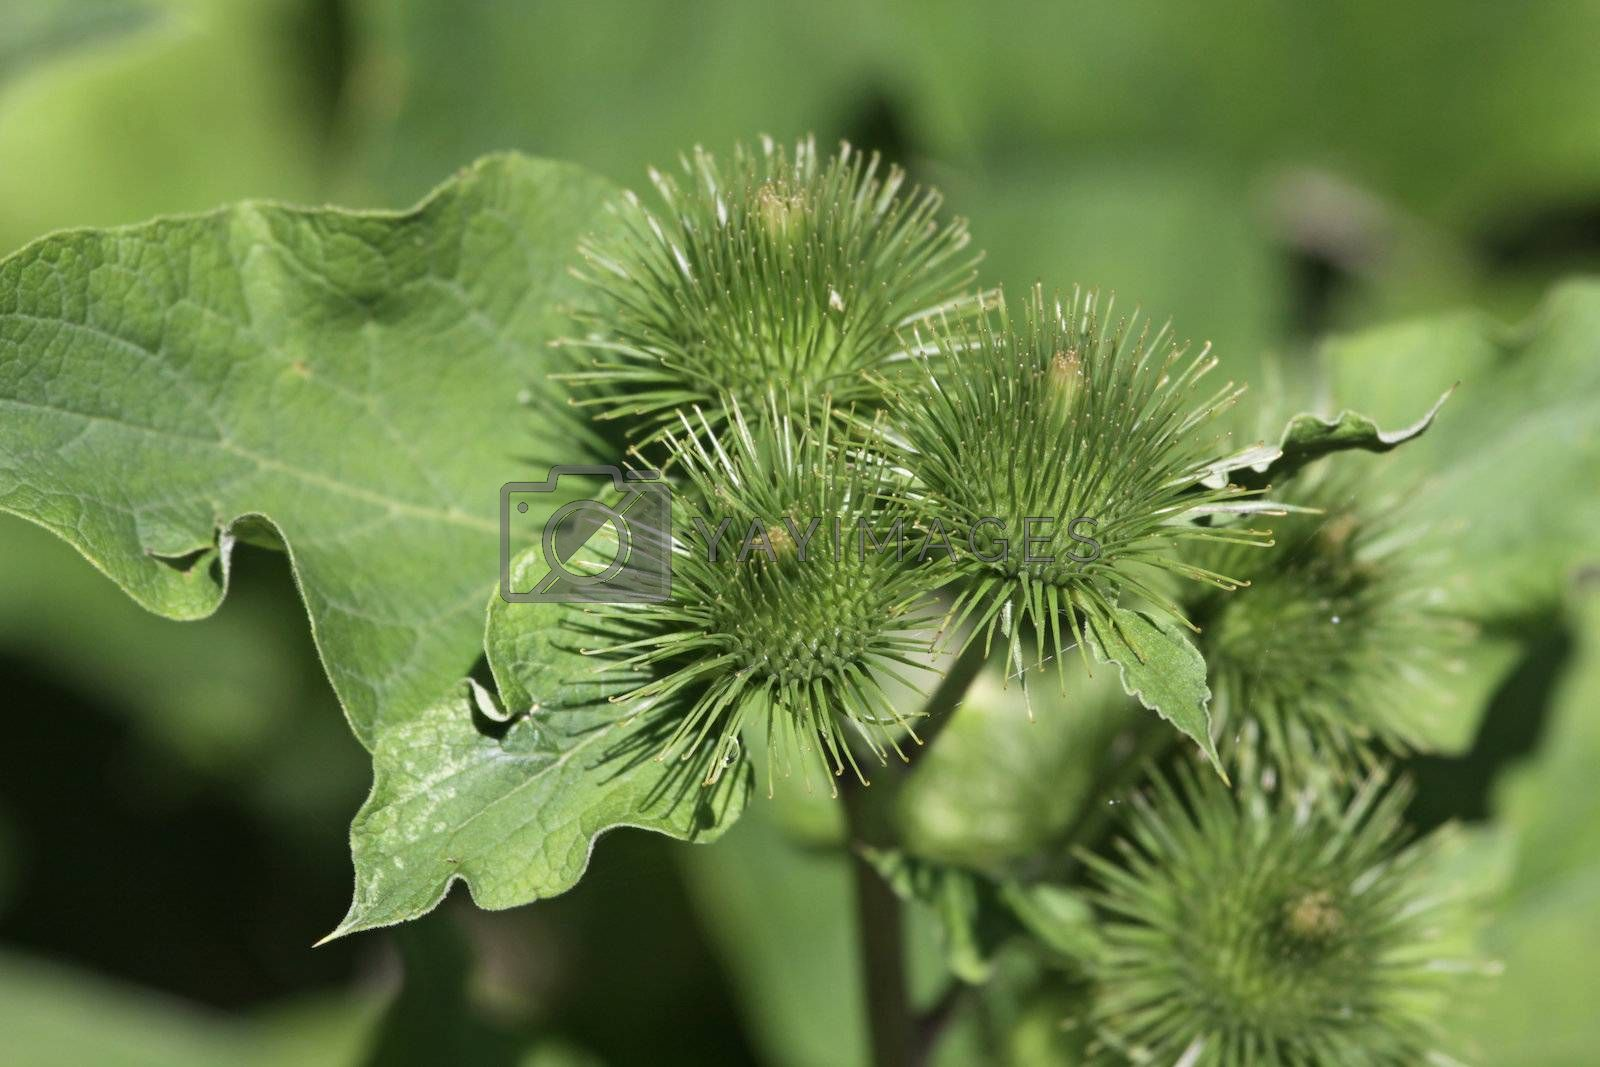 A blooming lesser burdock (Arctium minus) plant with burs on full display.  Shot in Southern Ontario, Canada.